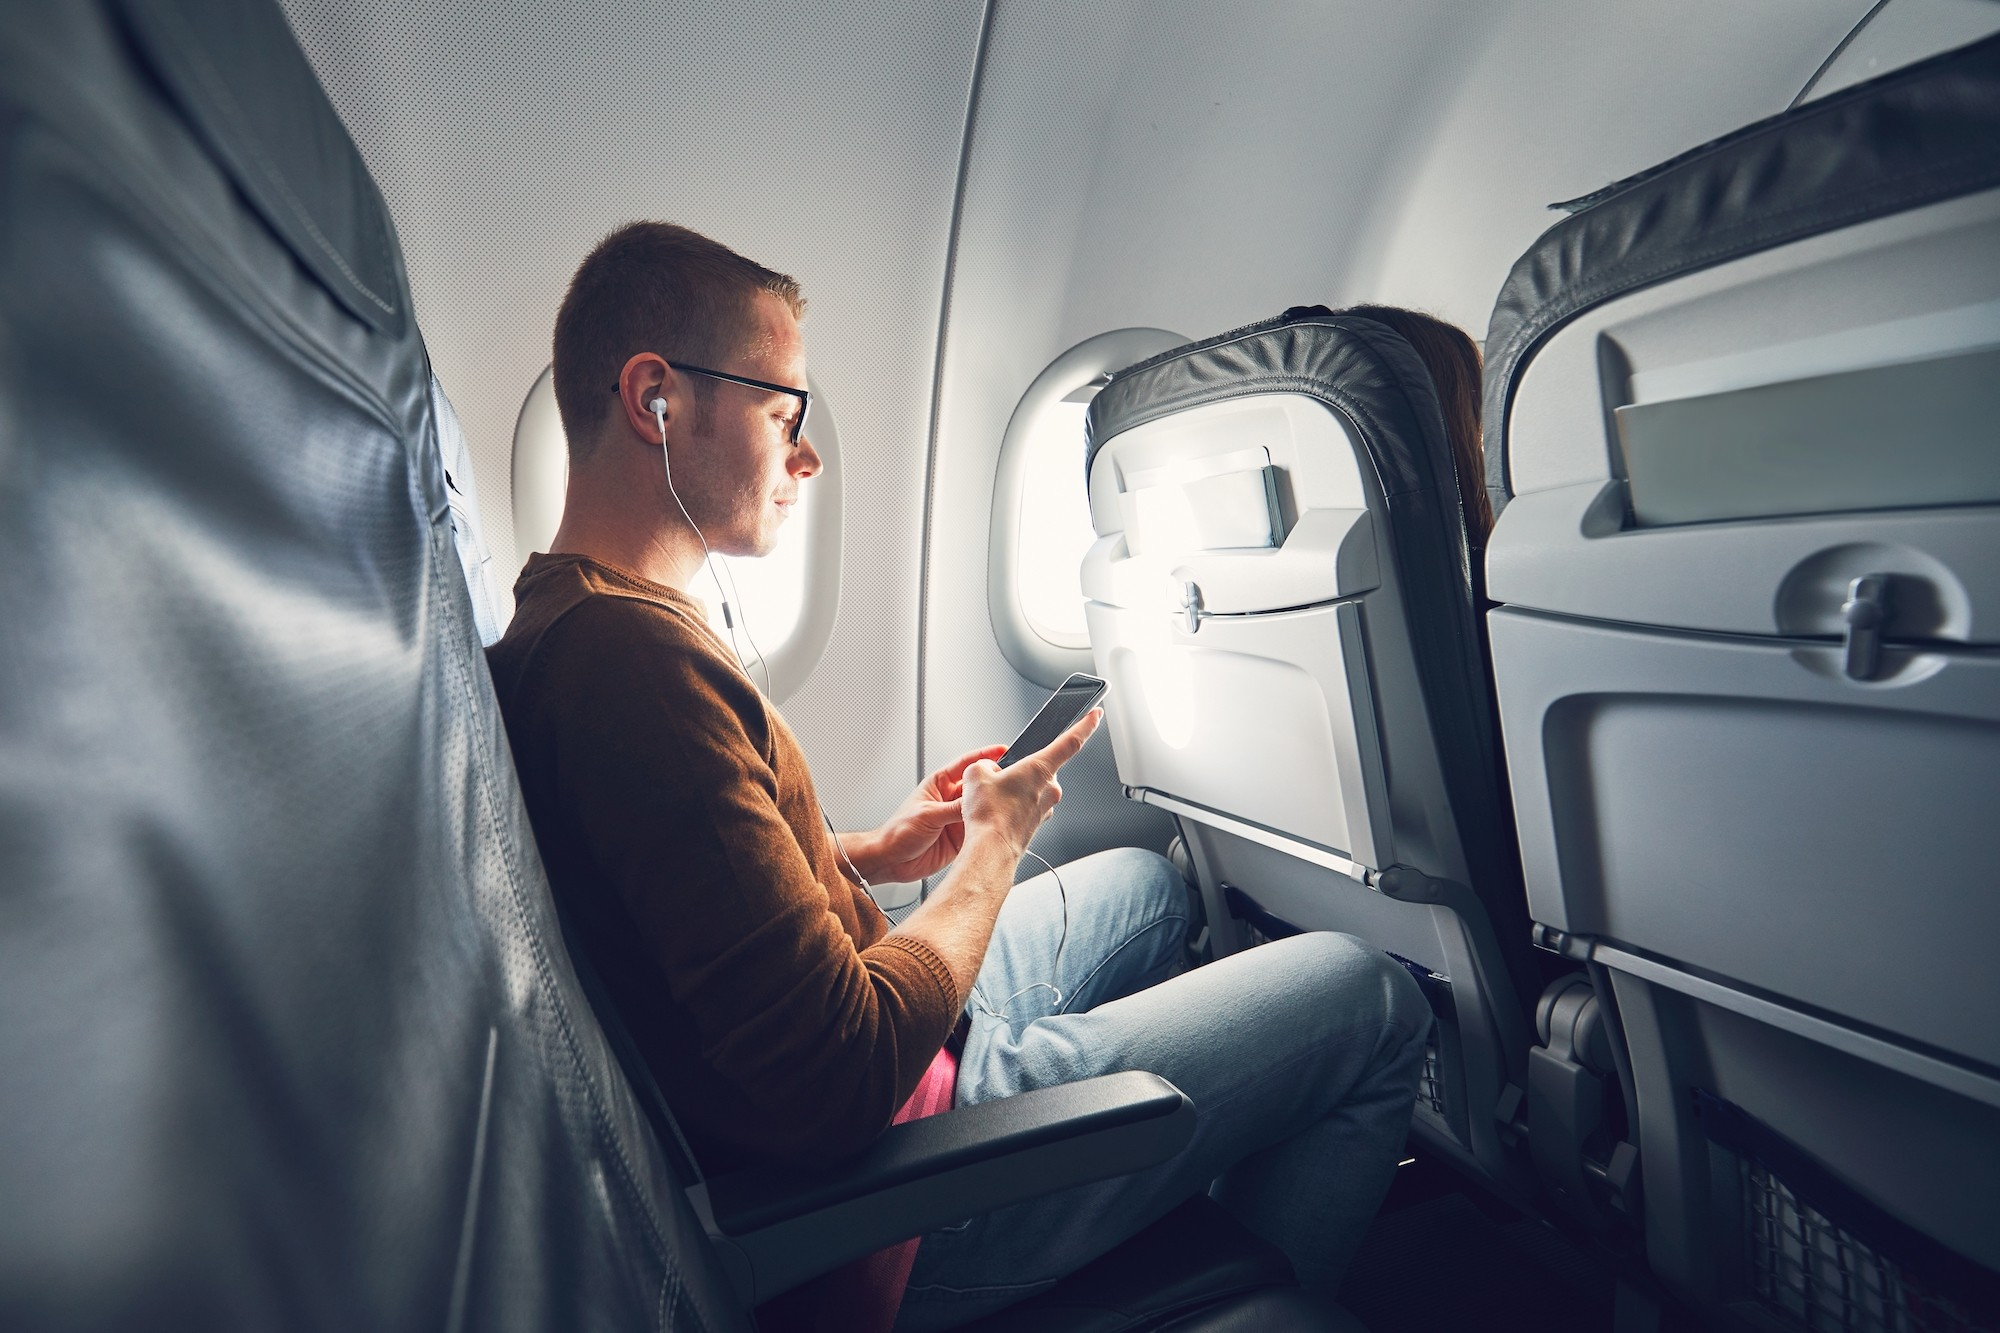 Airplane passenger listens to music on his phone